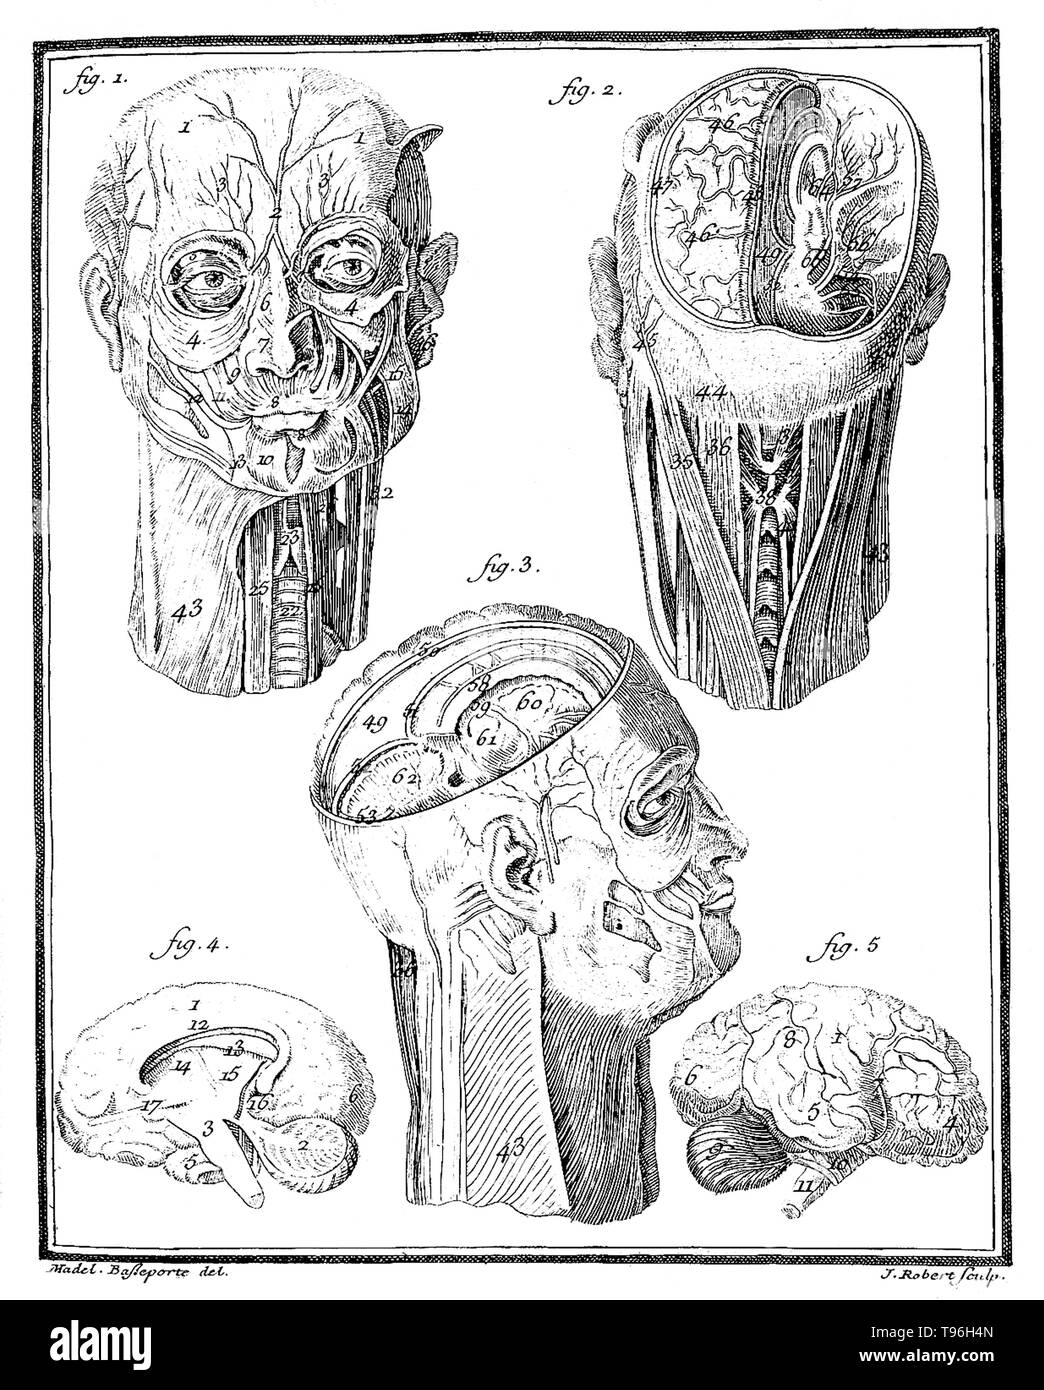 Comte de Buffon: Histoire Naturelle, V.III. Anatomical drawing of human head showing different compartments of the brain.The Histoire Naturelle, générale et particulière, avec la description du Cabinet du Roi (Natural History, General and Particular, with a Description of the King's Cabinet) is an encyclopedic collection of 36 large (quarto) volumes written between 1749-1804 by the Comte de Buffon, and continued in eight more volumes after his death by his colleagues. - Stock Image